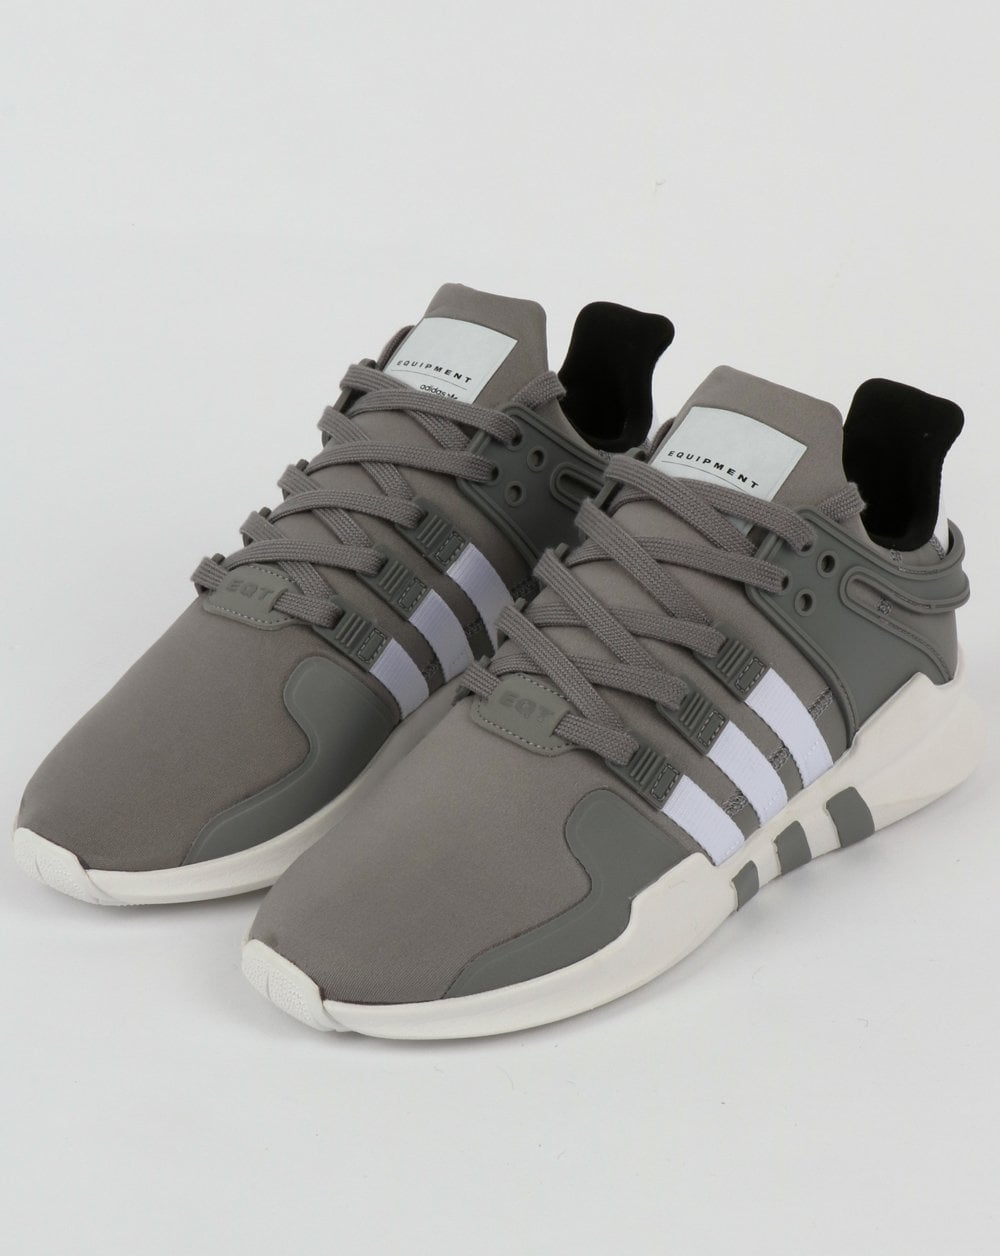 huge discount 6cd1c 5db4a adidas Trainers Adidas EQT Support Adv Trainers Grey 3 White